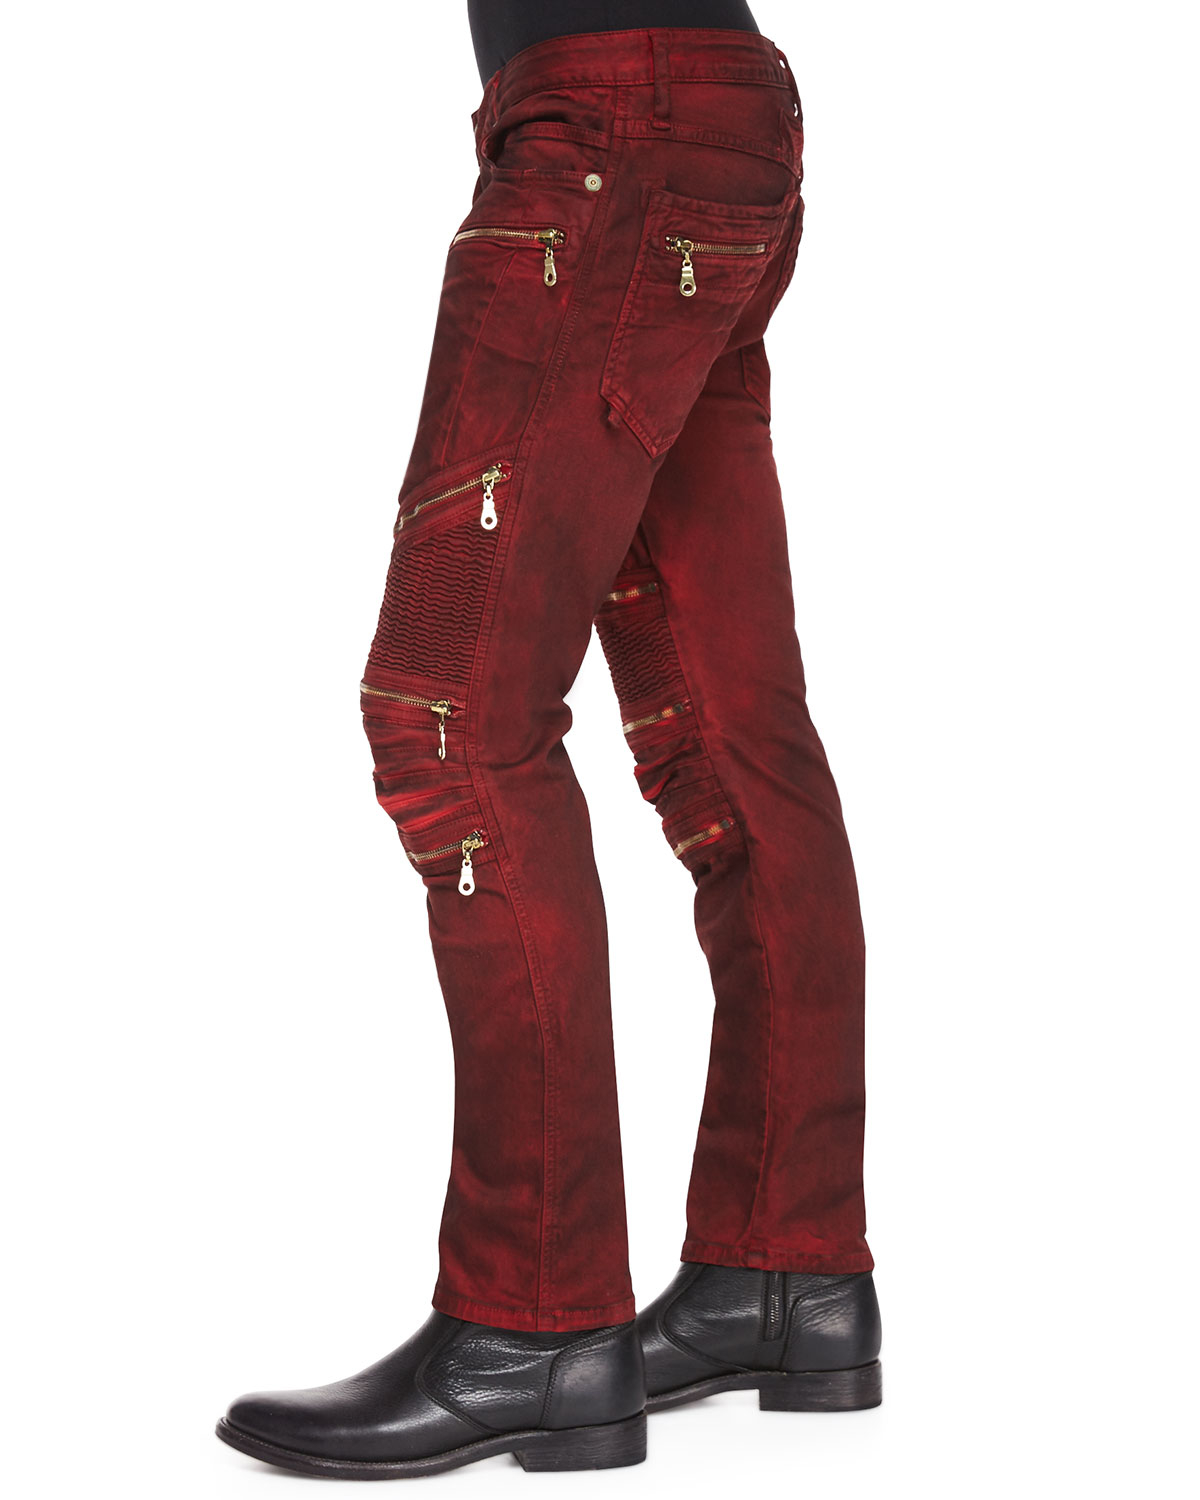 Robin S Jean Dusty Road Coated Moto Denim Jeans In Red For